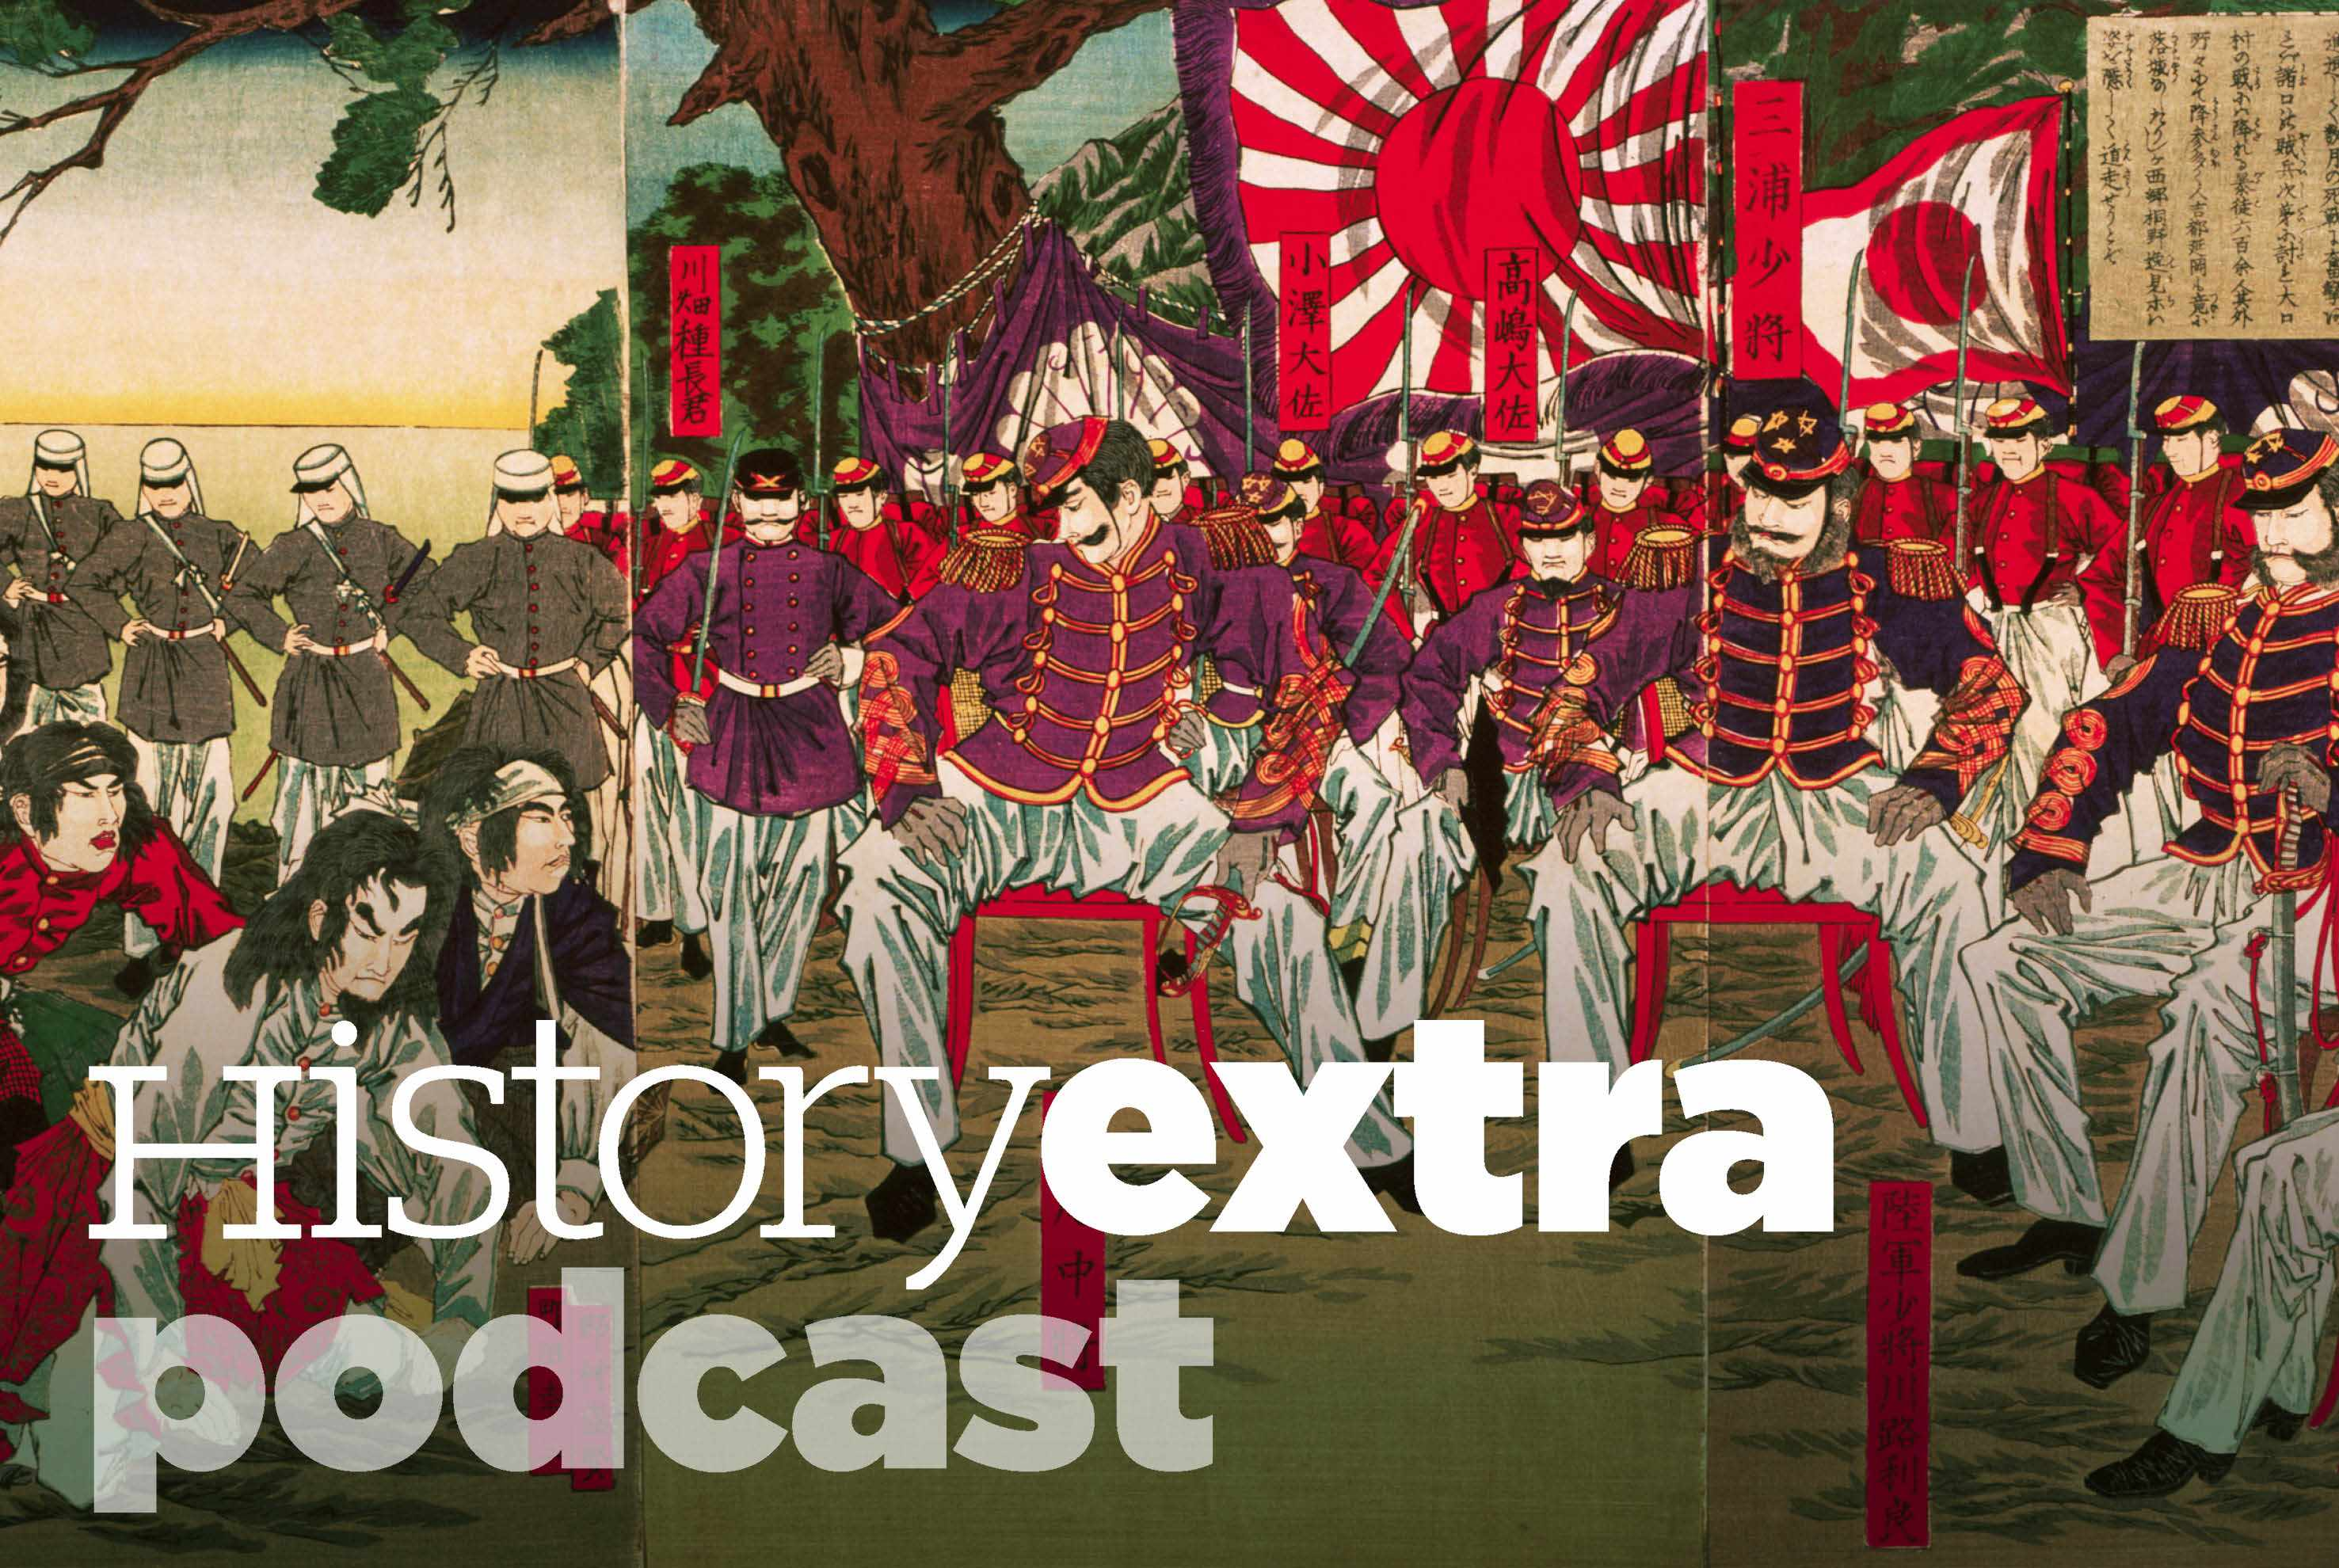 In 1877, a major rebellion in Kyushu concentrated the opposition of conservative elements to the westernization of Japan. (Photo by Asian Art/Getty Images)